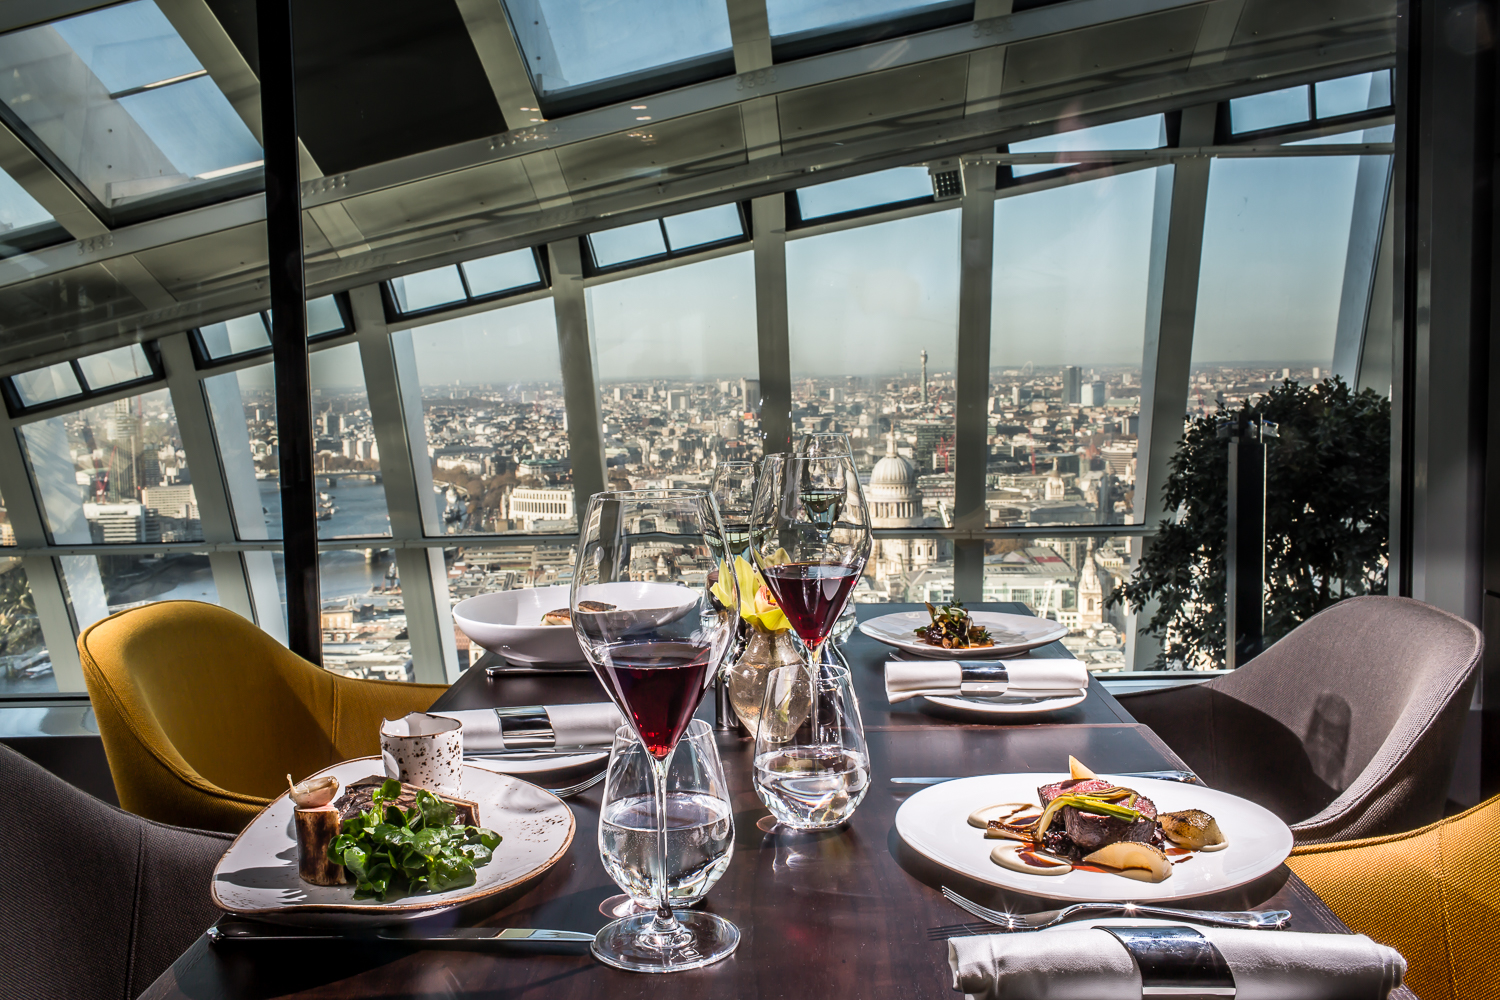 Fenchurch Restaurant - London